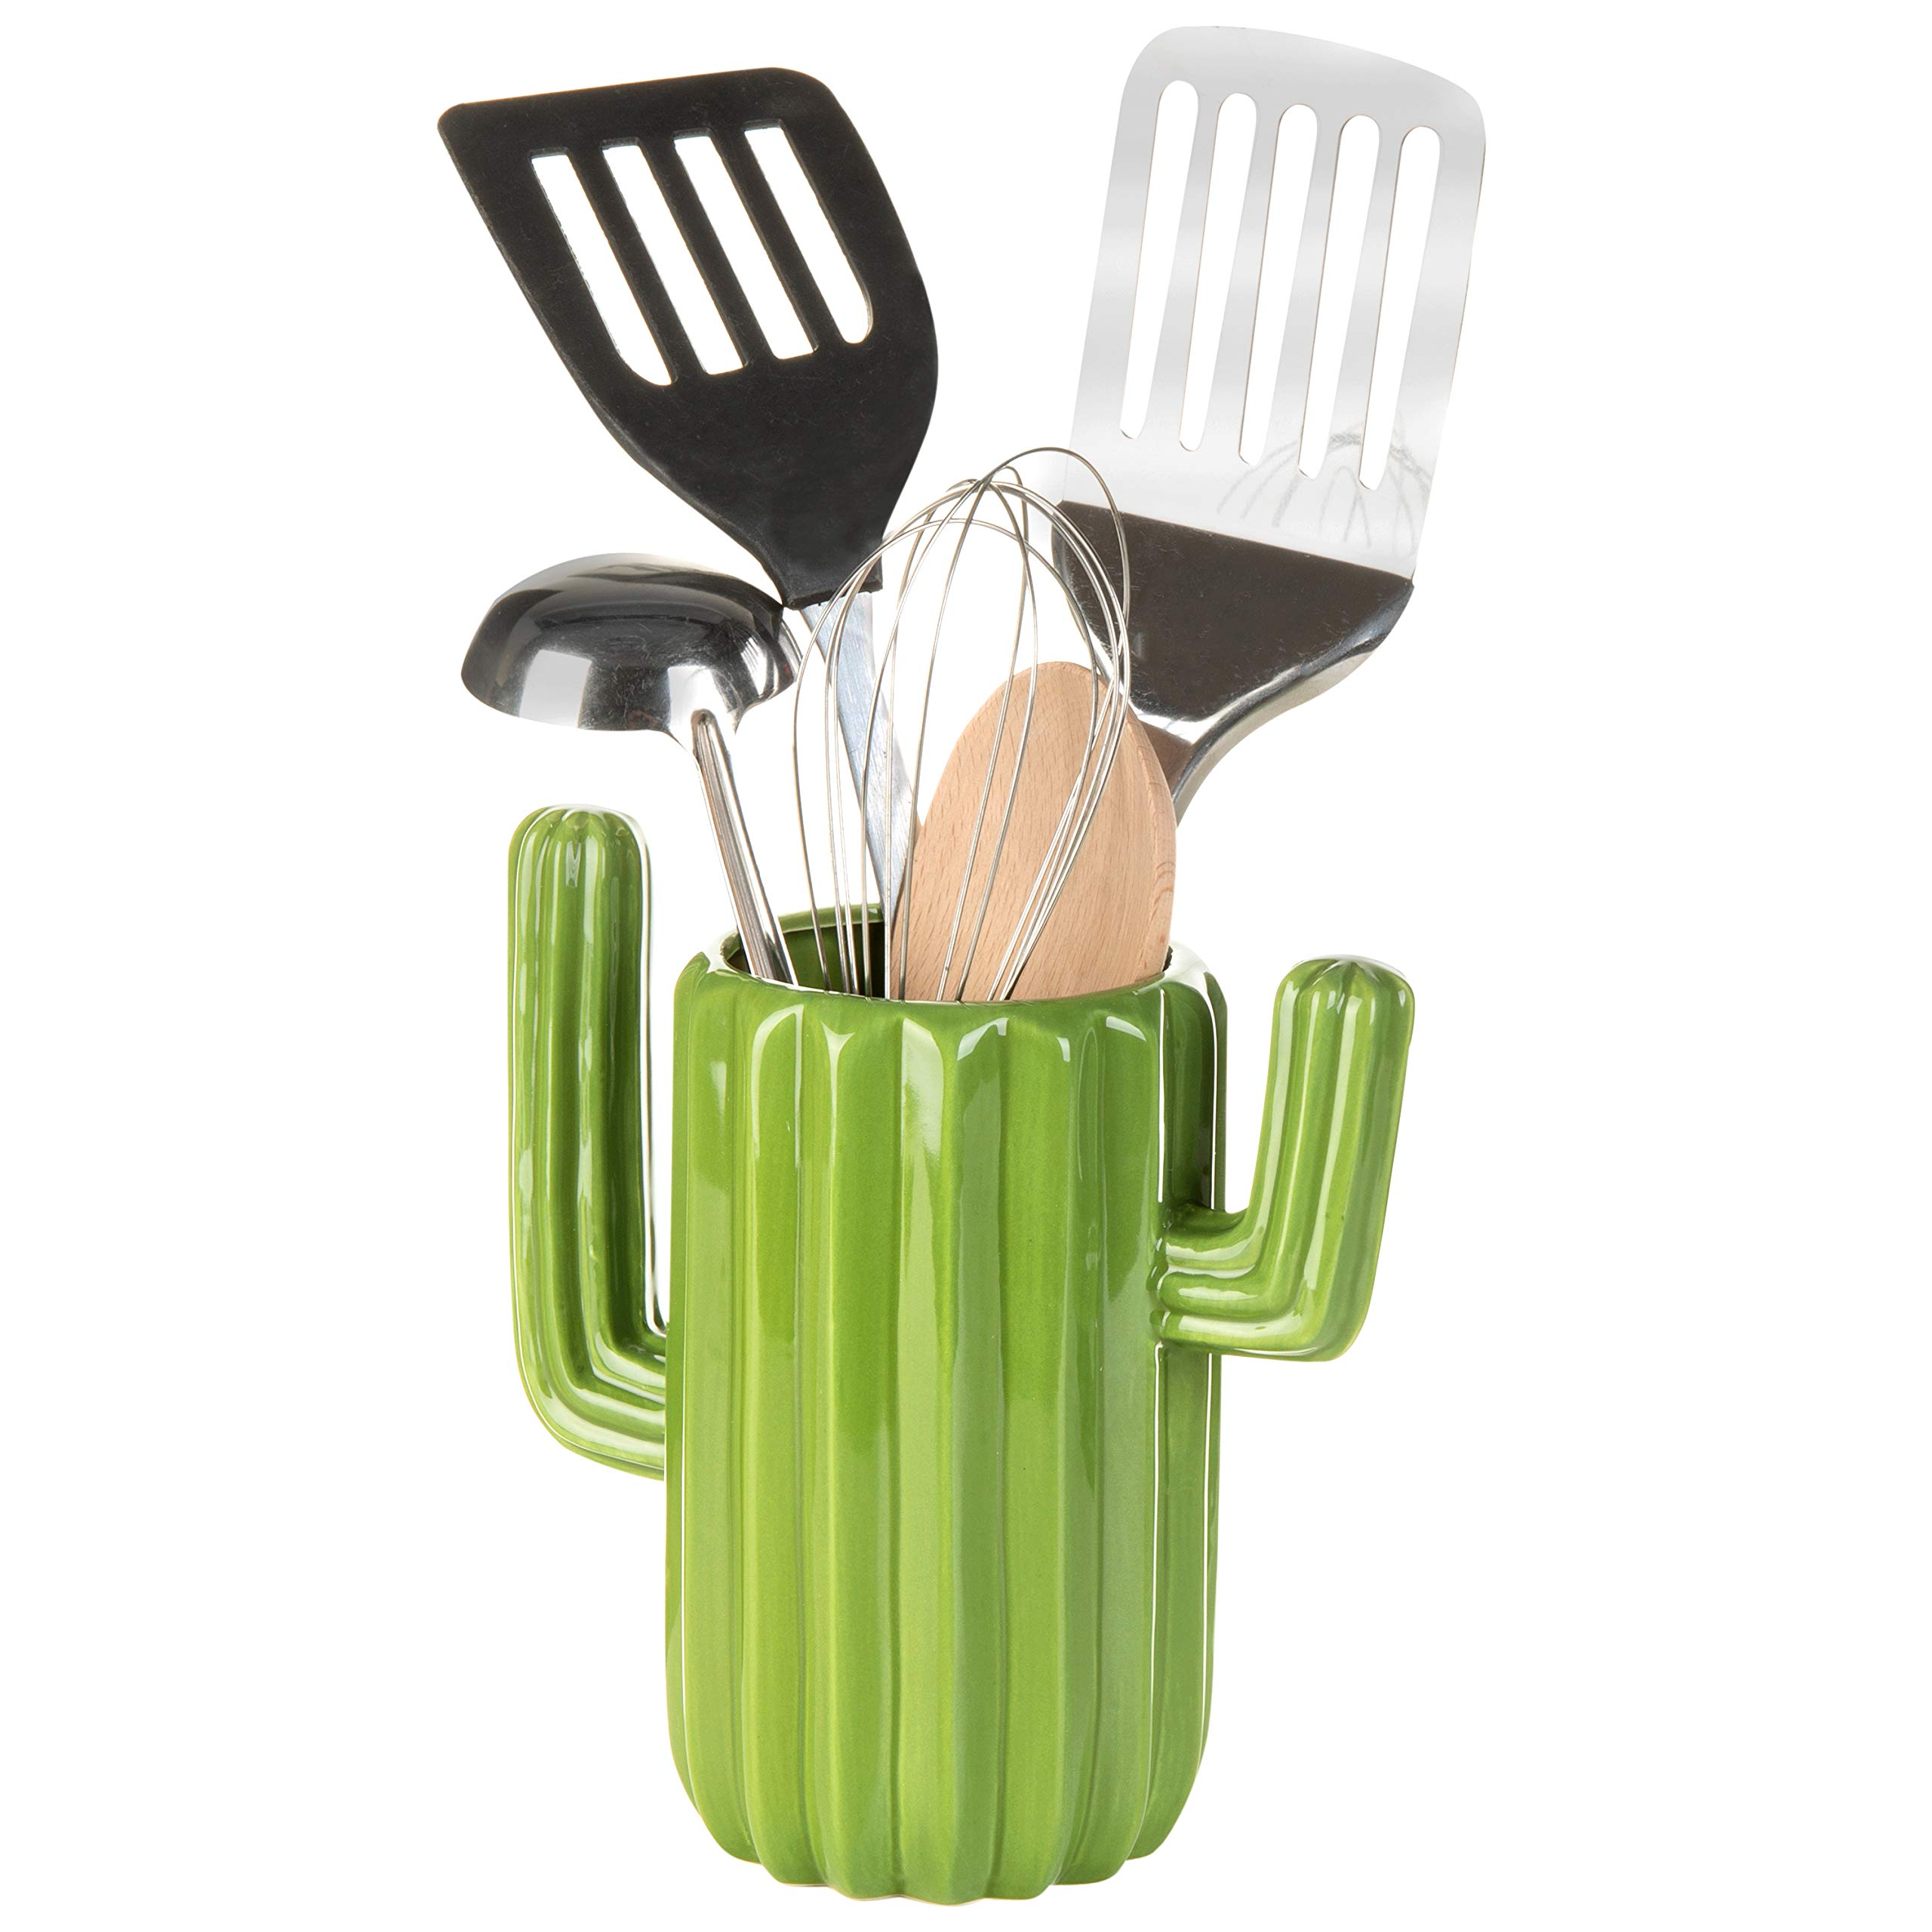 MyGift Green Ceramic Cactus-Shaped Utensil Crock by MyGift